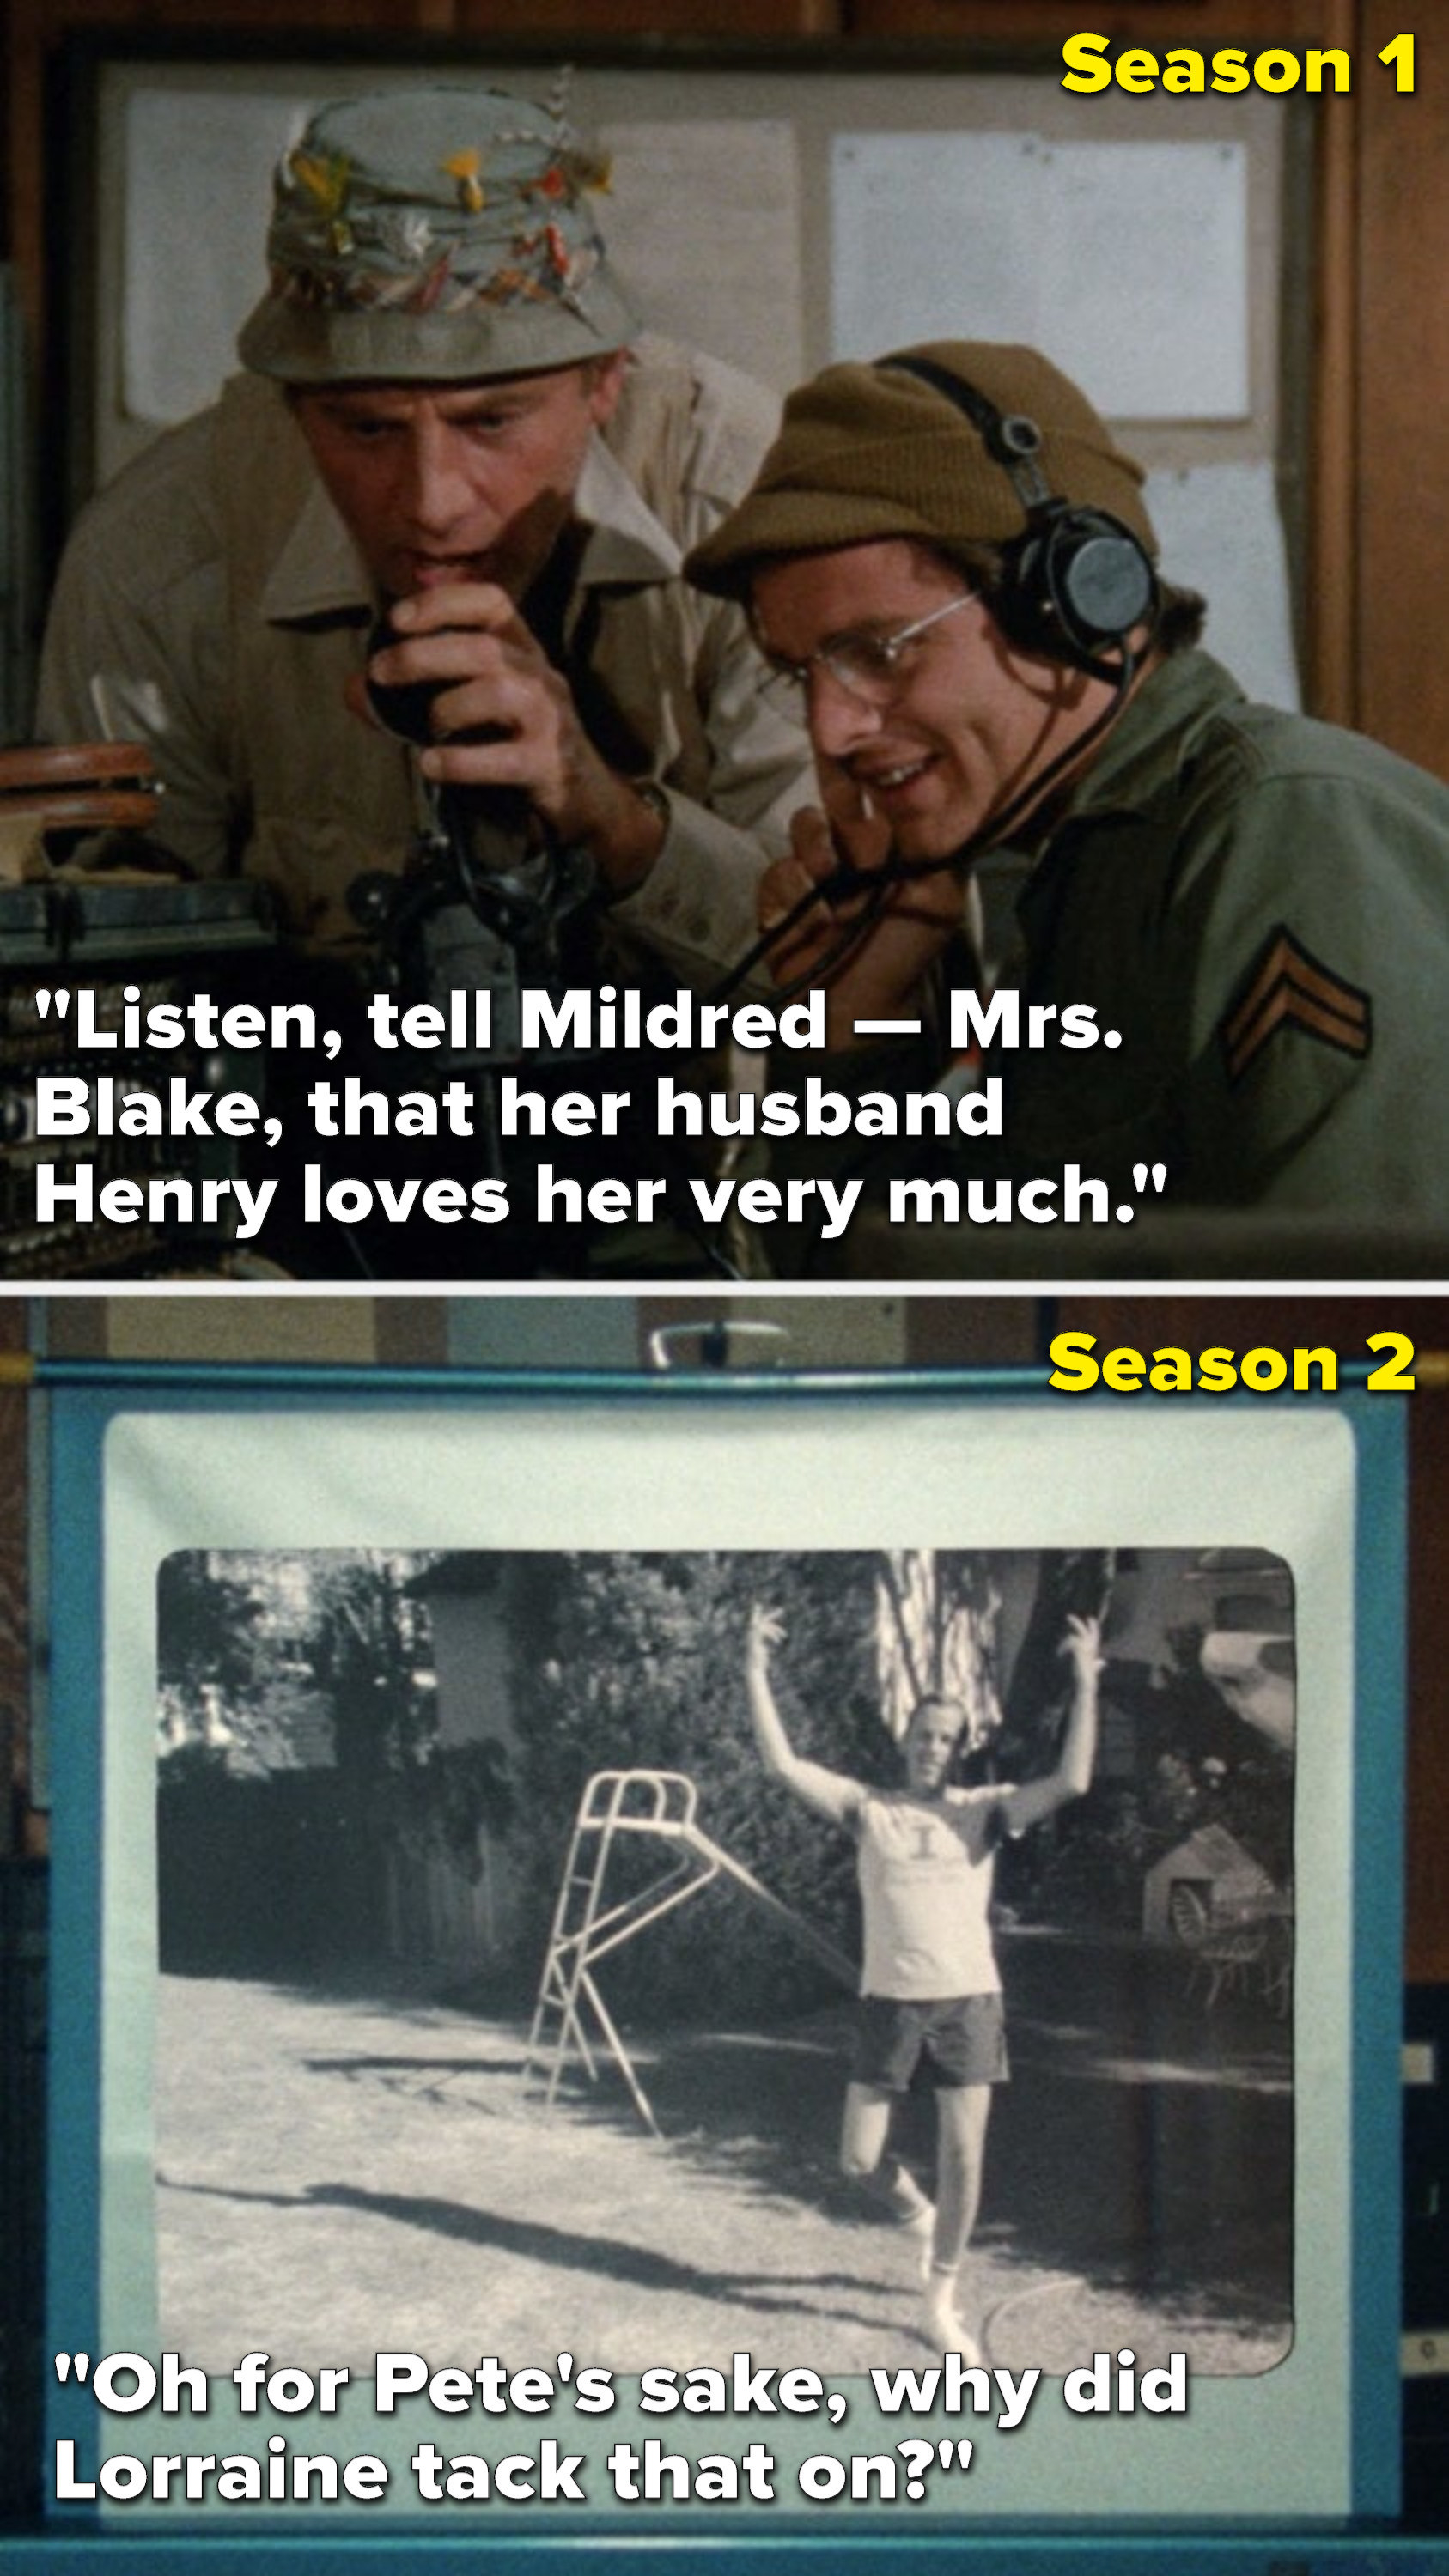 "In Season 1, Henry says, ""Listen, tell Mildred — Mrs Blake, that her husband Henry loves her very much,"" but in Season 2 Henry says, ""Oh for Pete's sake, why did Lorraine tack that on"""